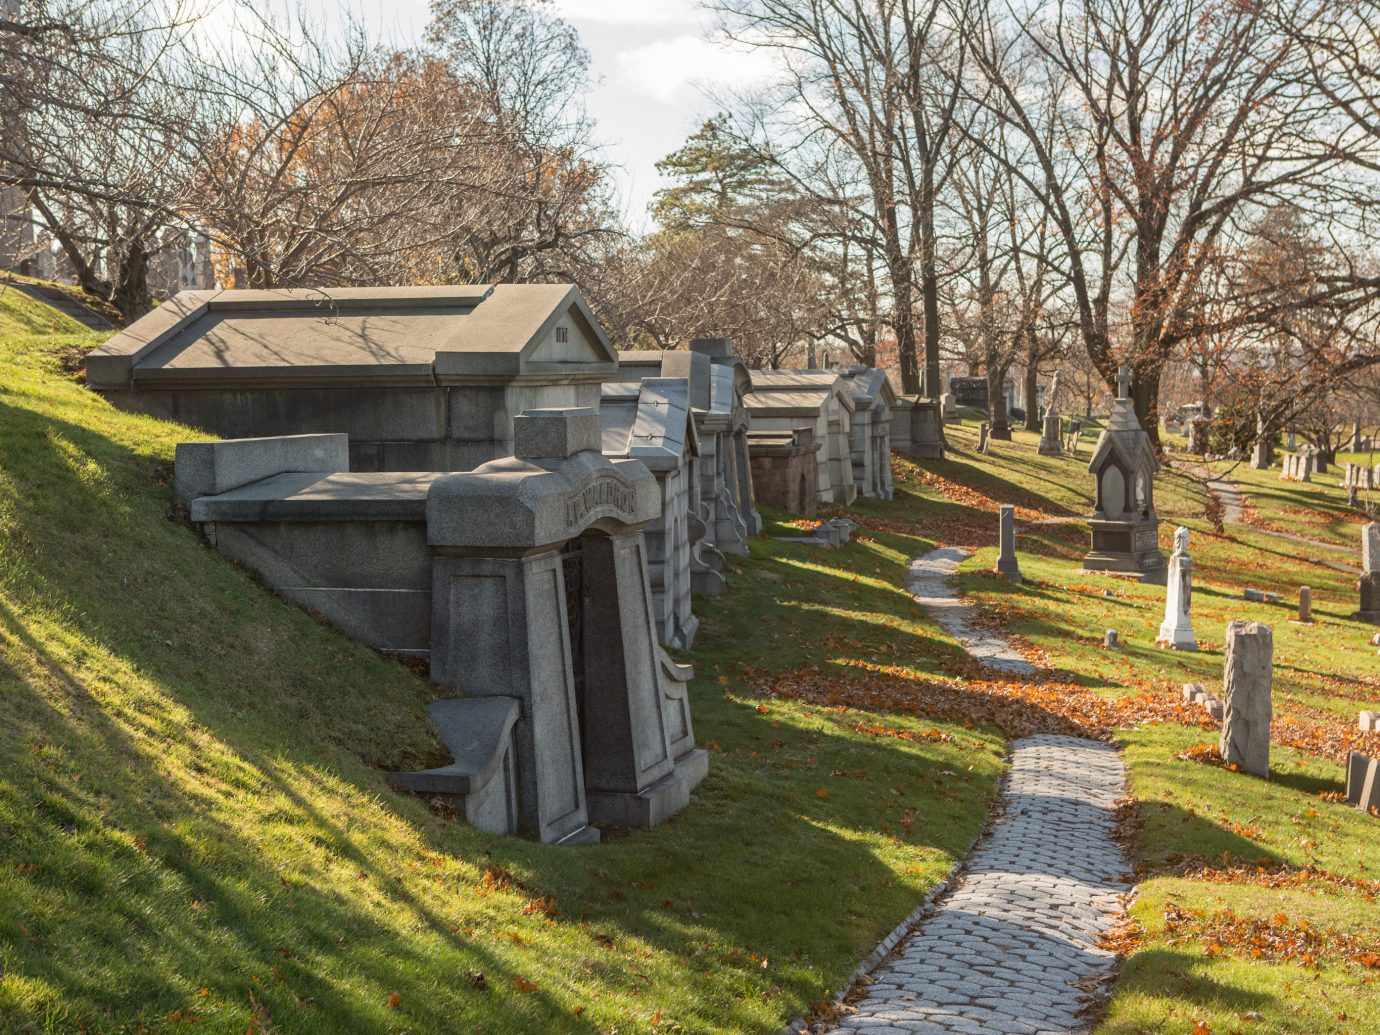 Green-Wood Cemetery in NYC